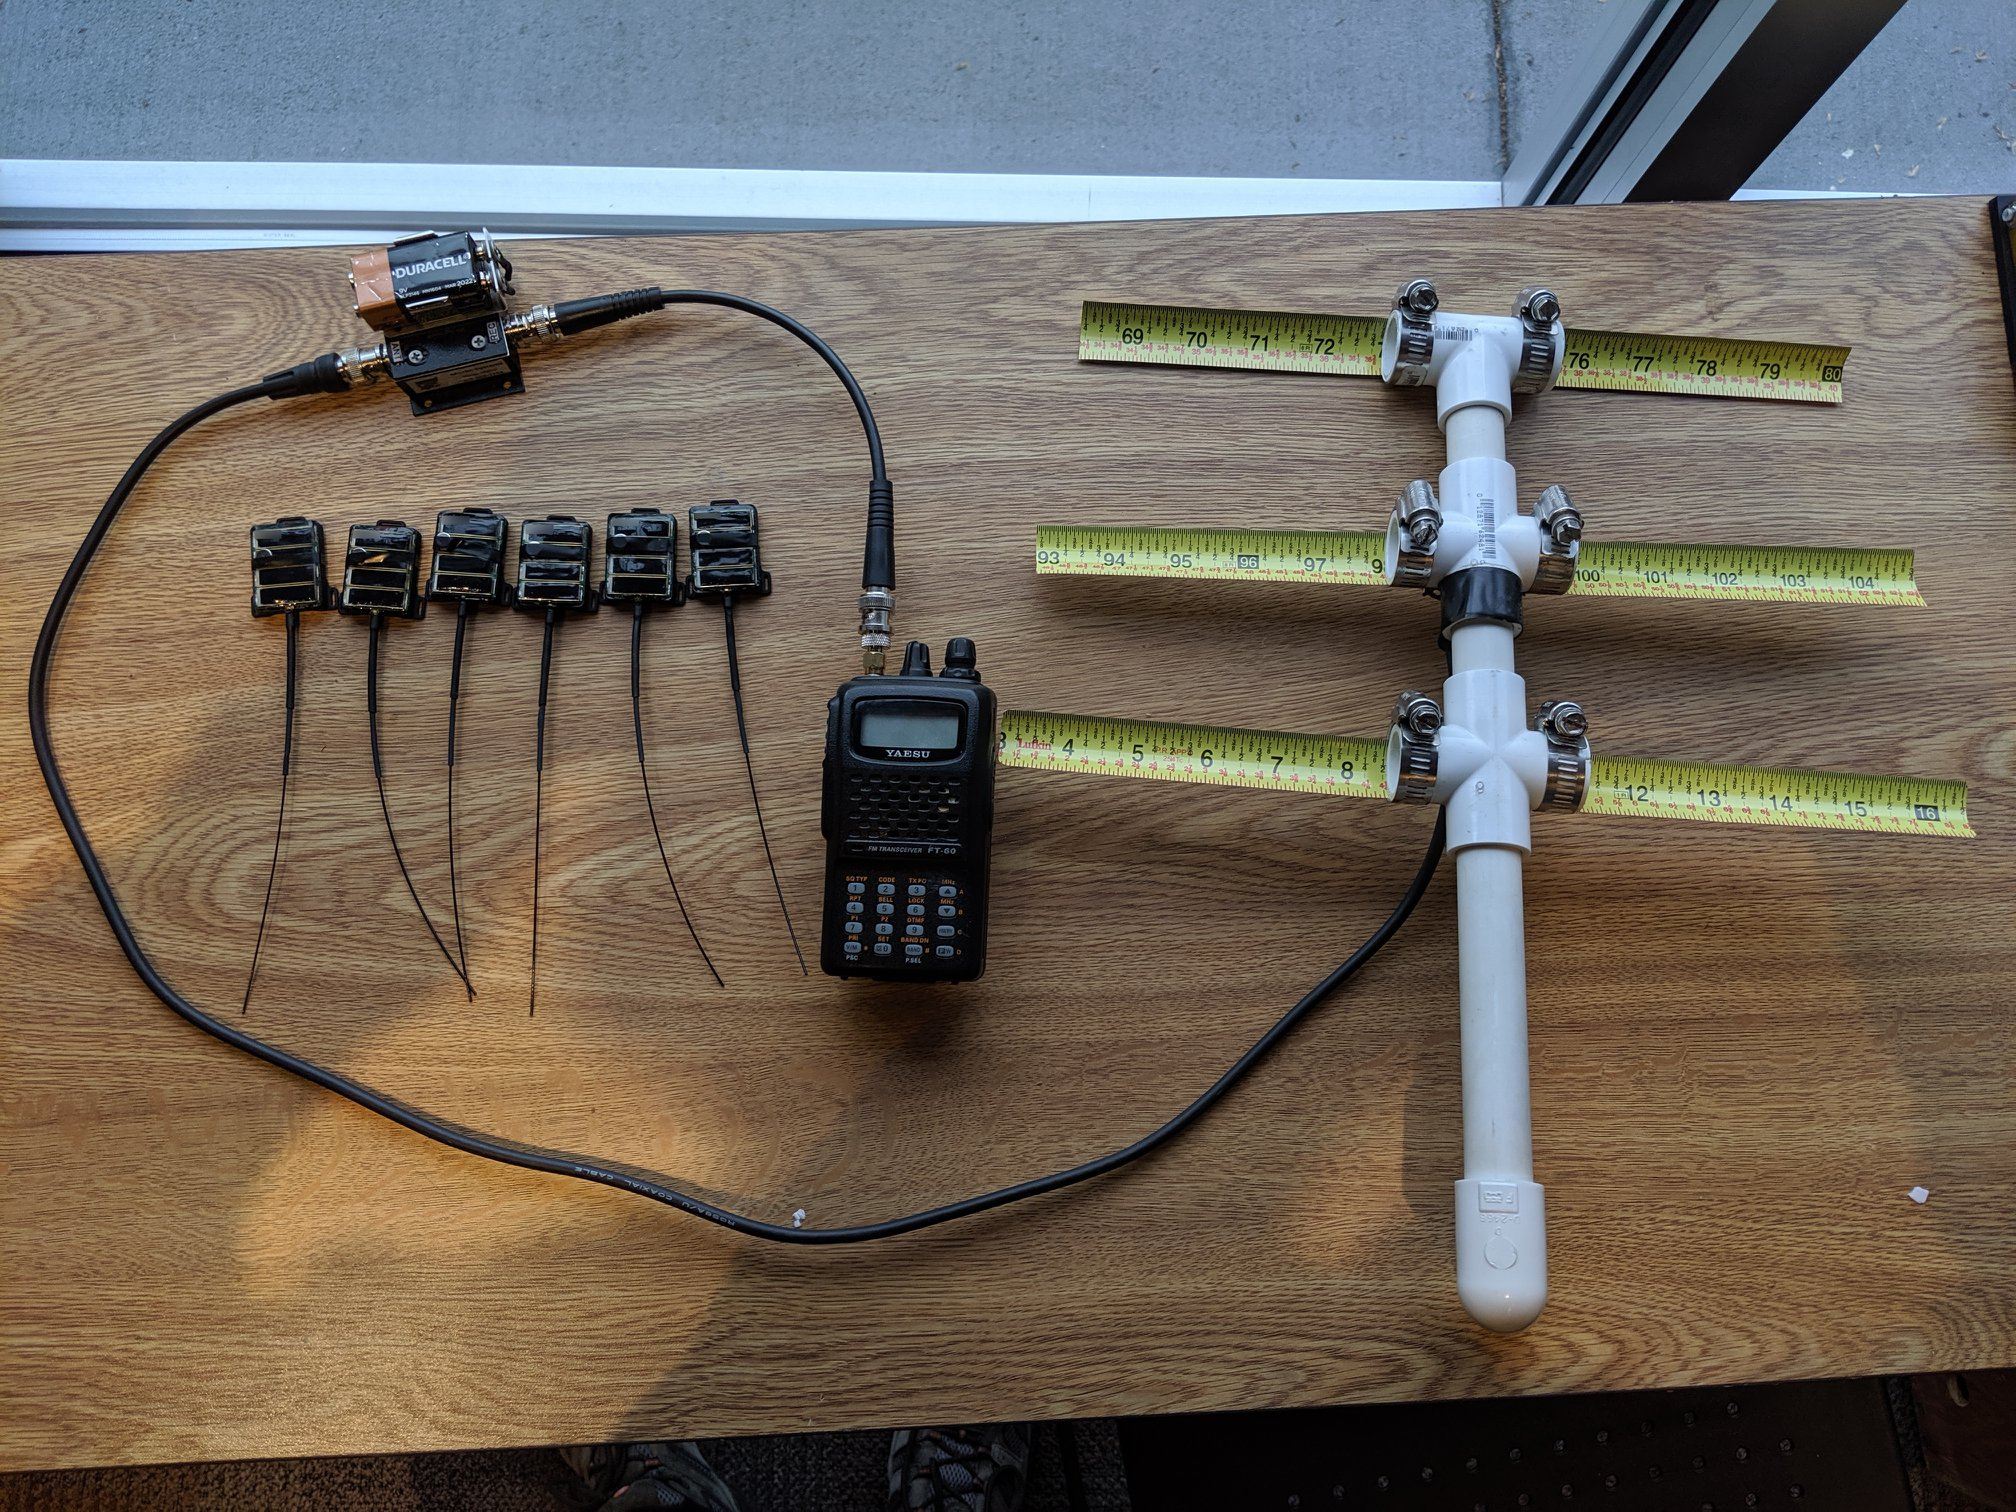 six small transmitters with antennas sit on a desk with a larger t-shaped receiver antenna